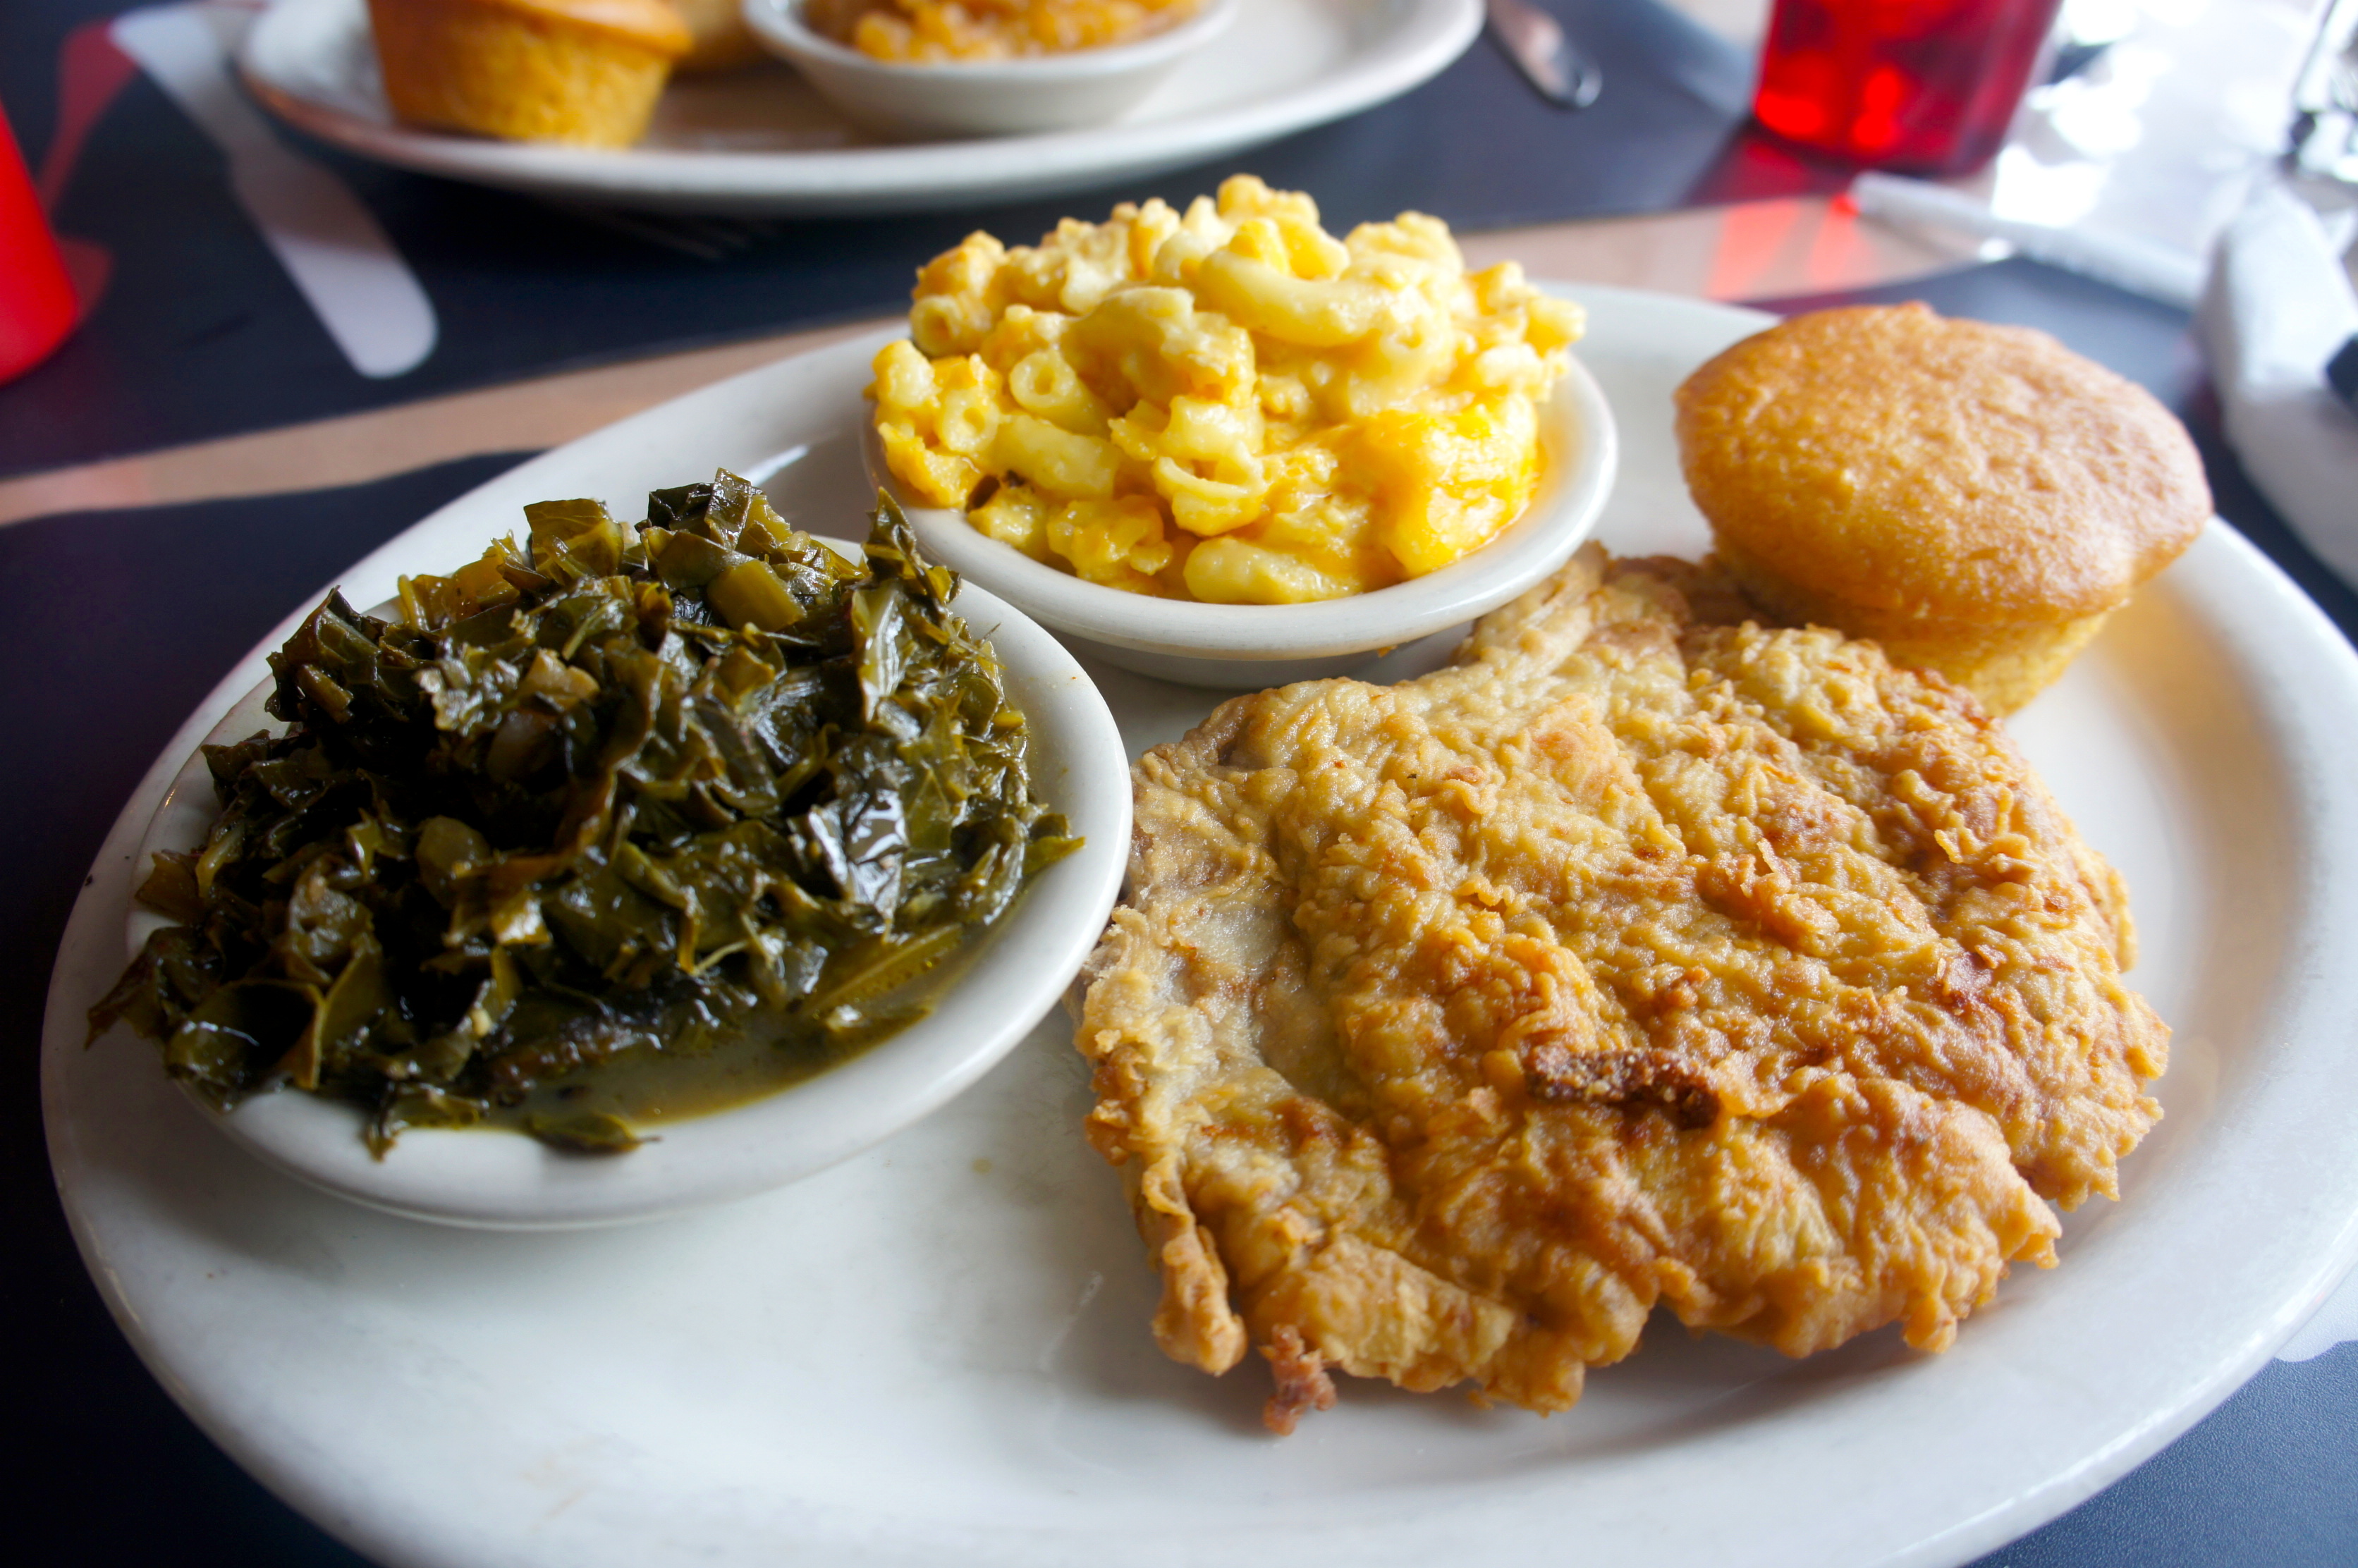 Southern comfort soul food at nikkis place downtown orlando fried pork chop before being smothered forumfinder Image collections